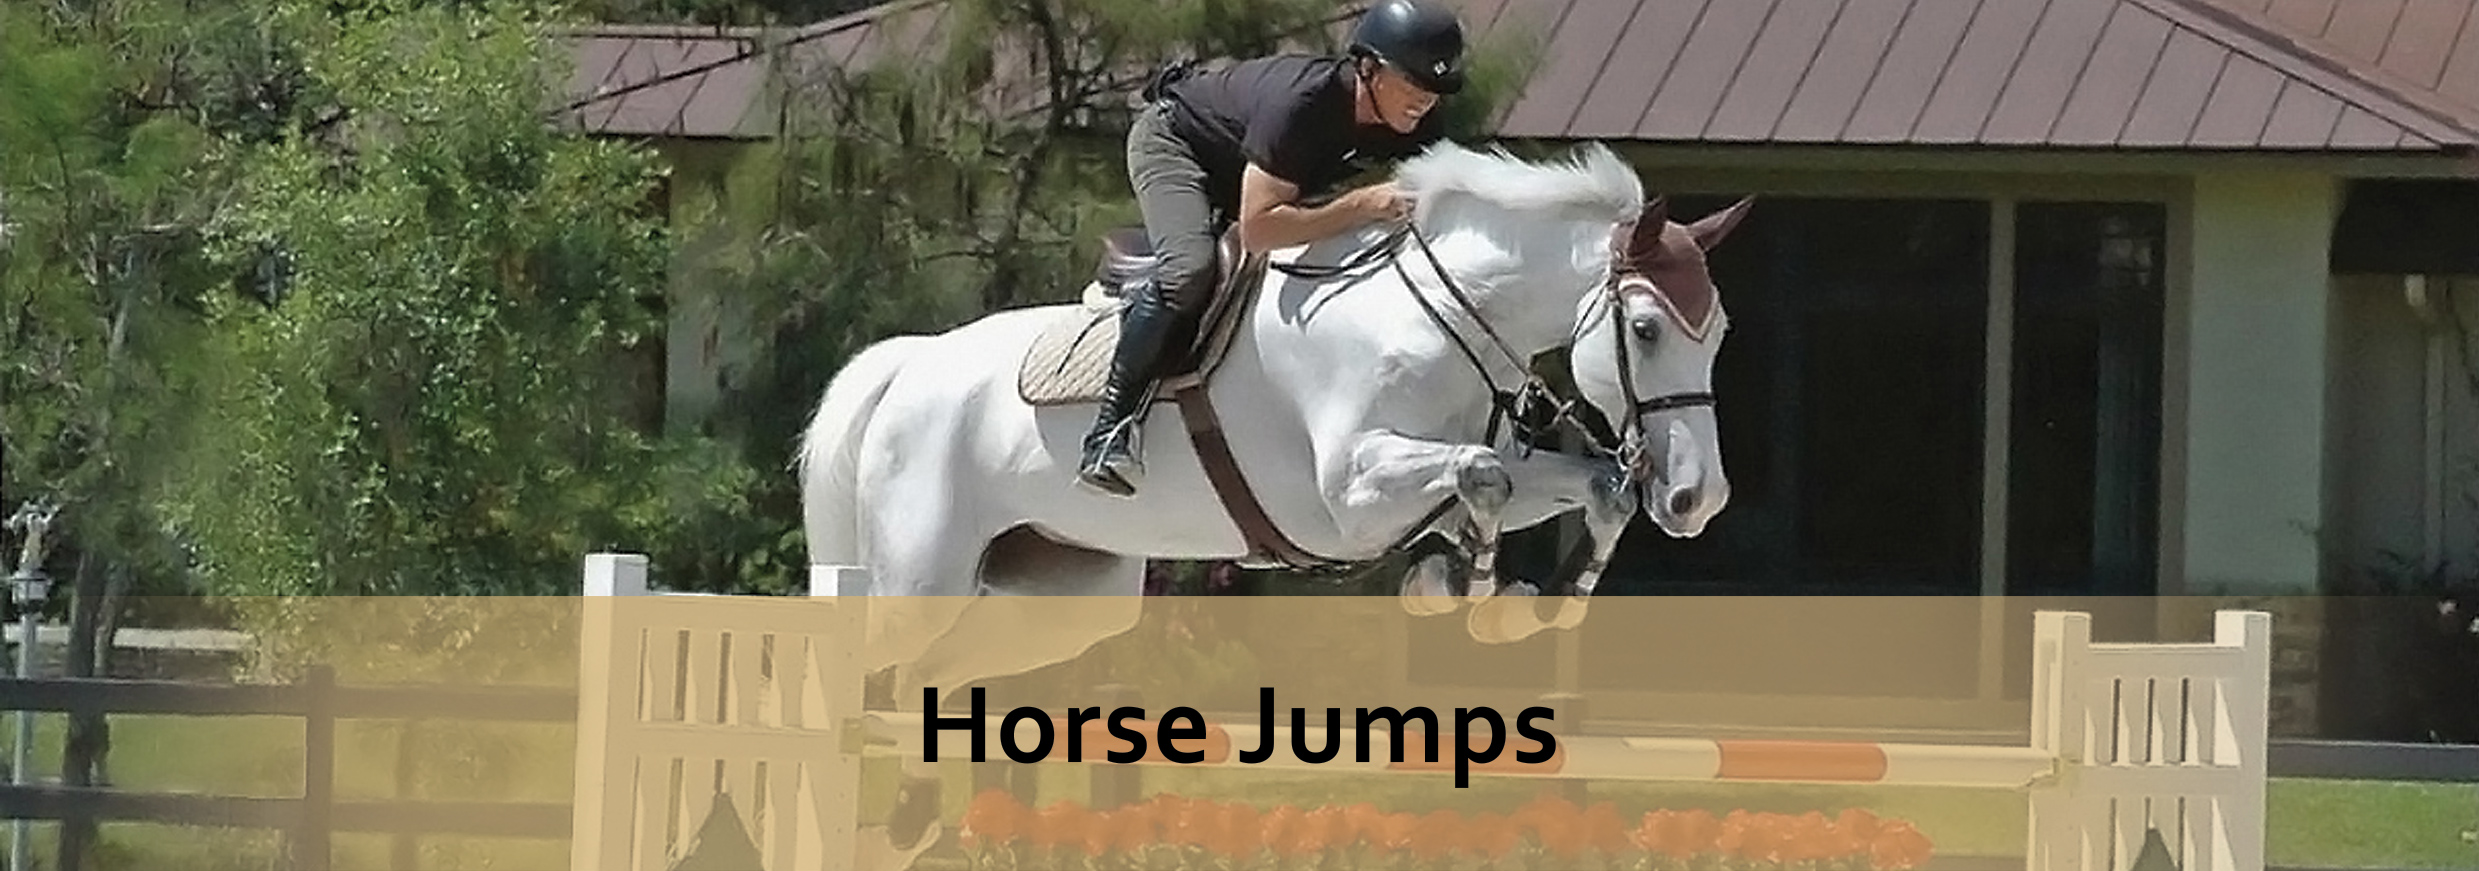 horse jumps landing page